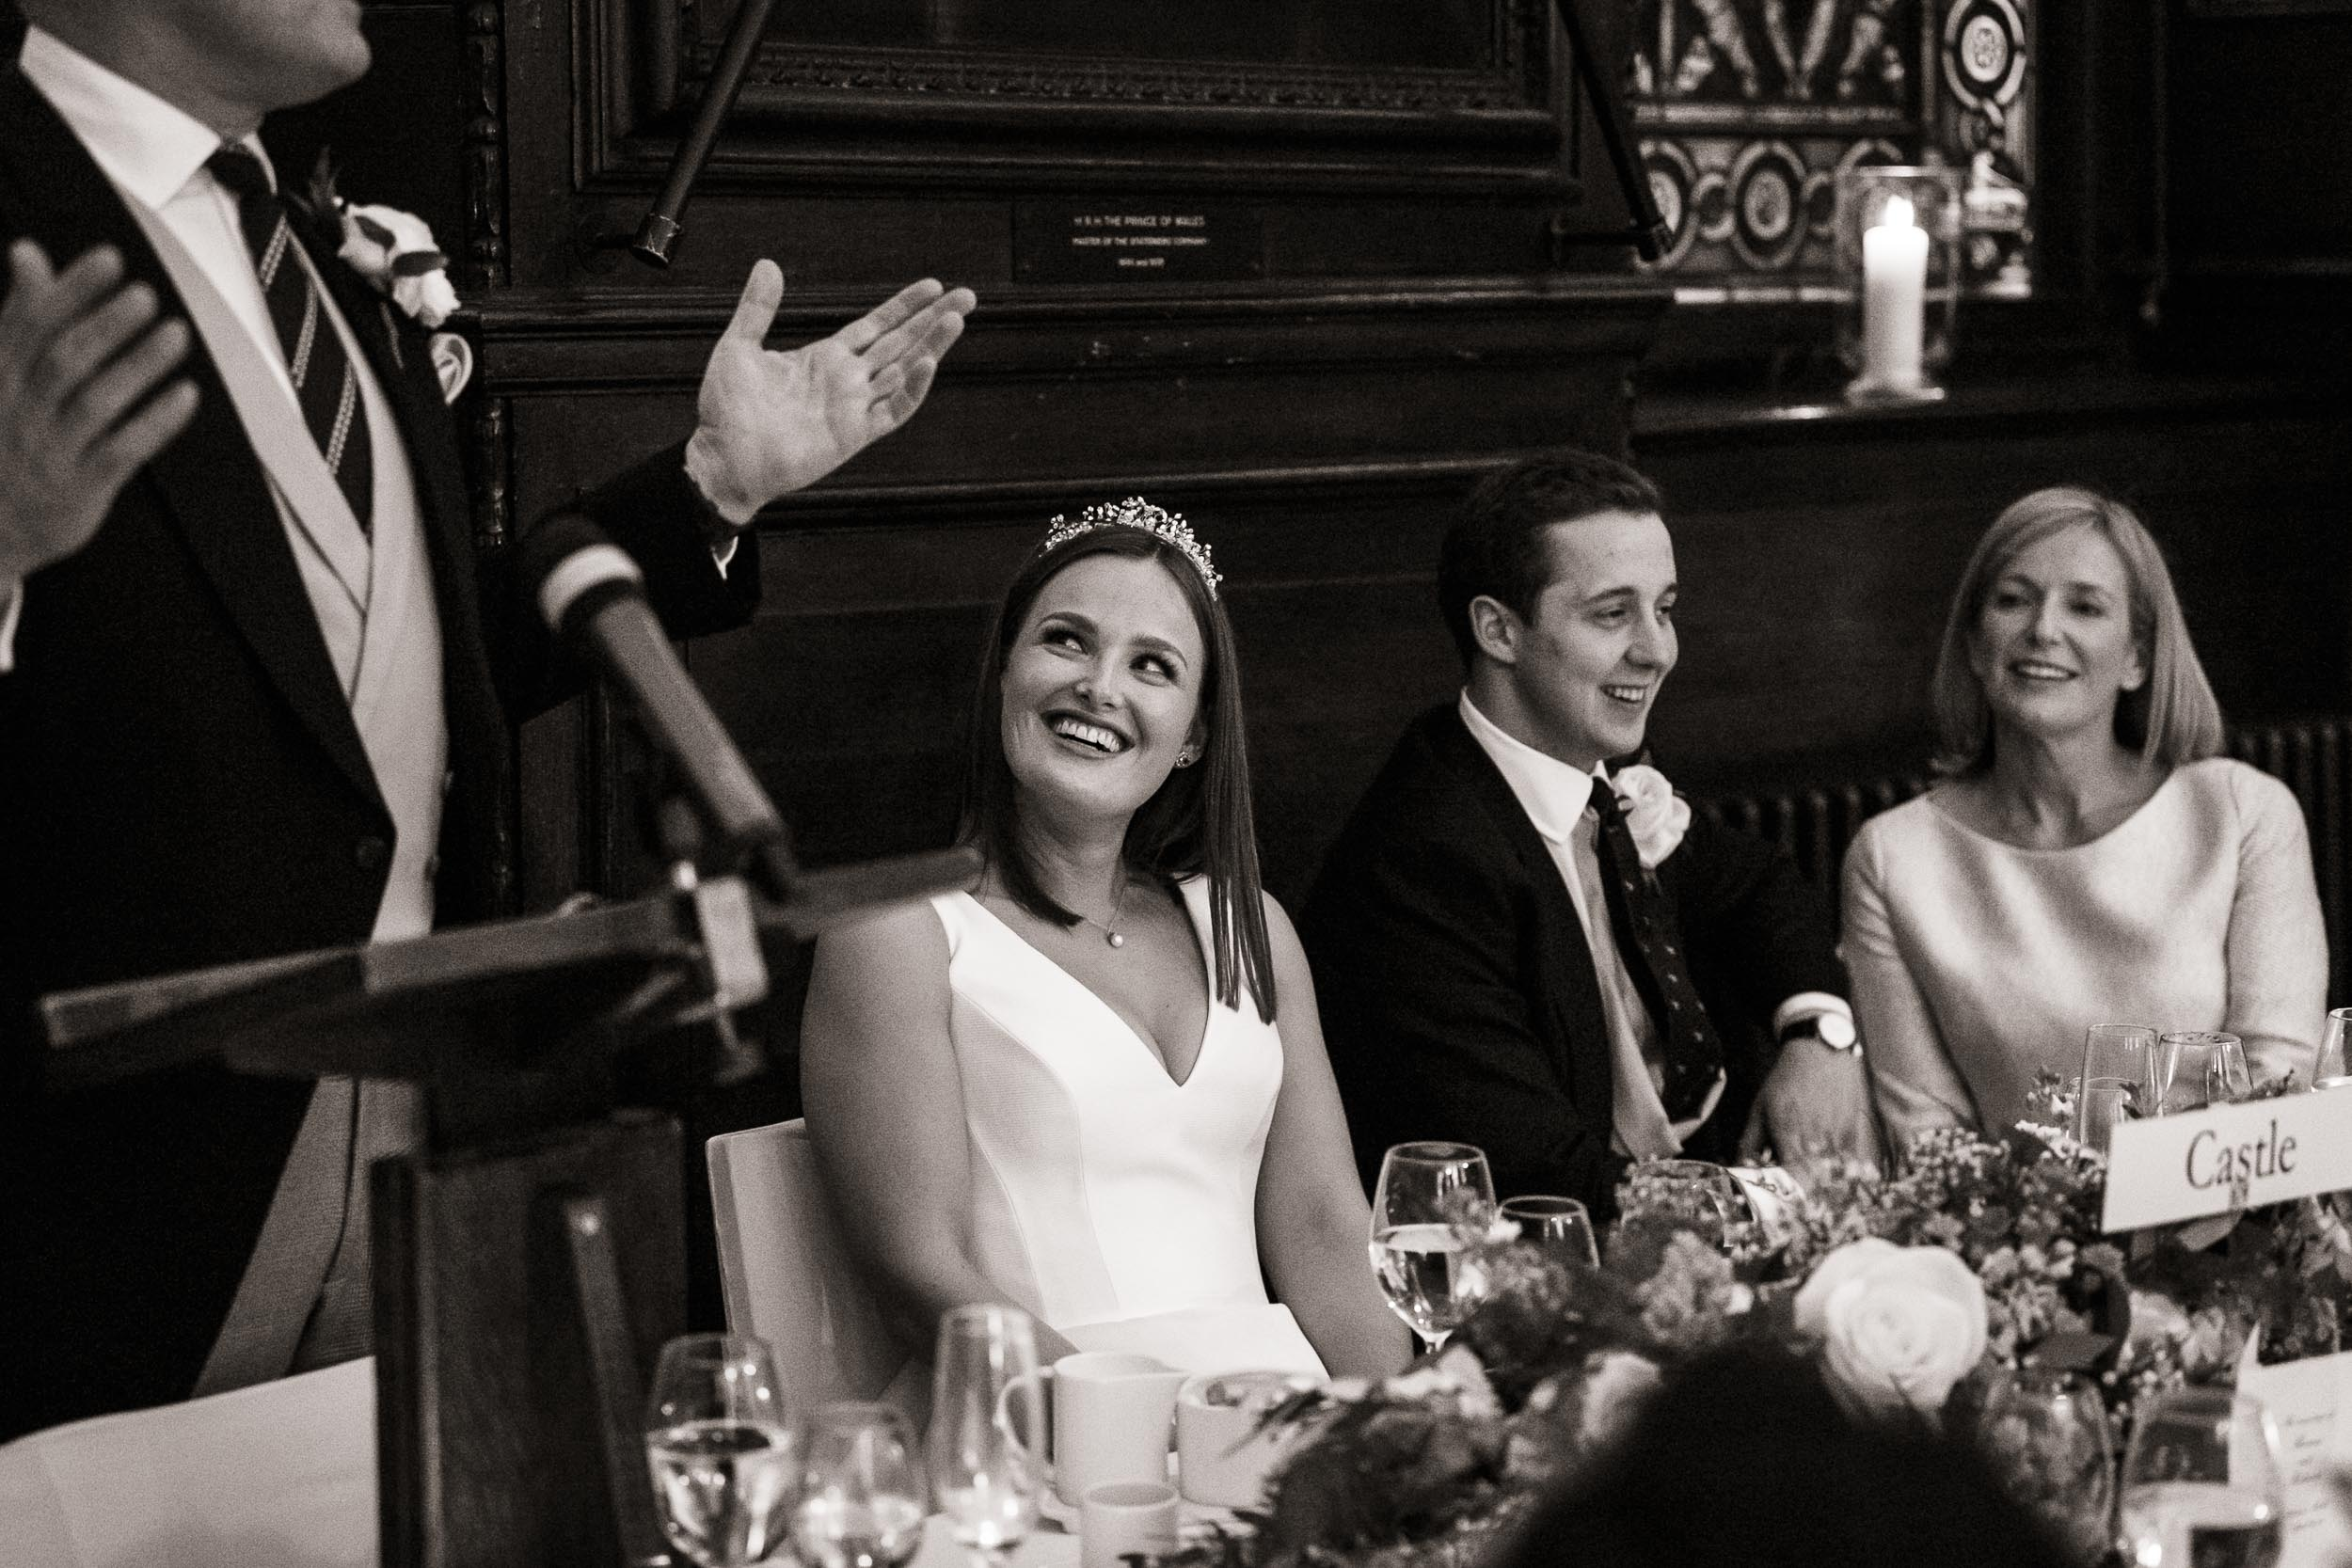 stationers-hall-wedding-photographer-london 106.jpg